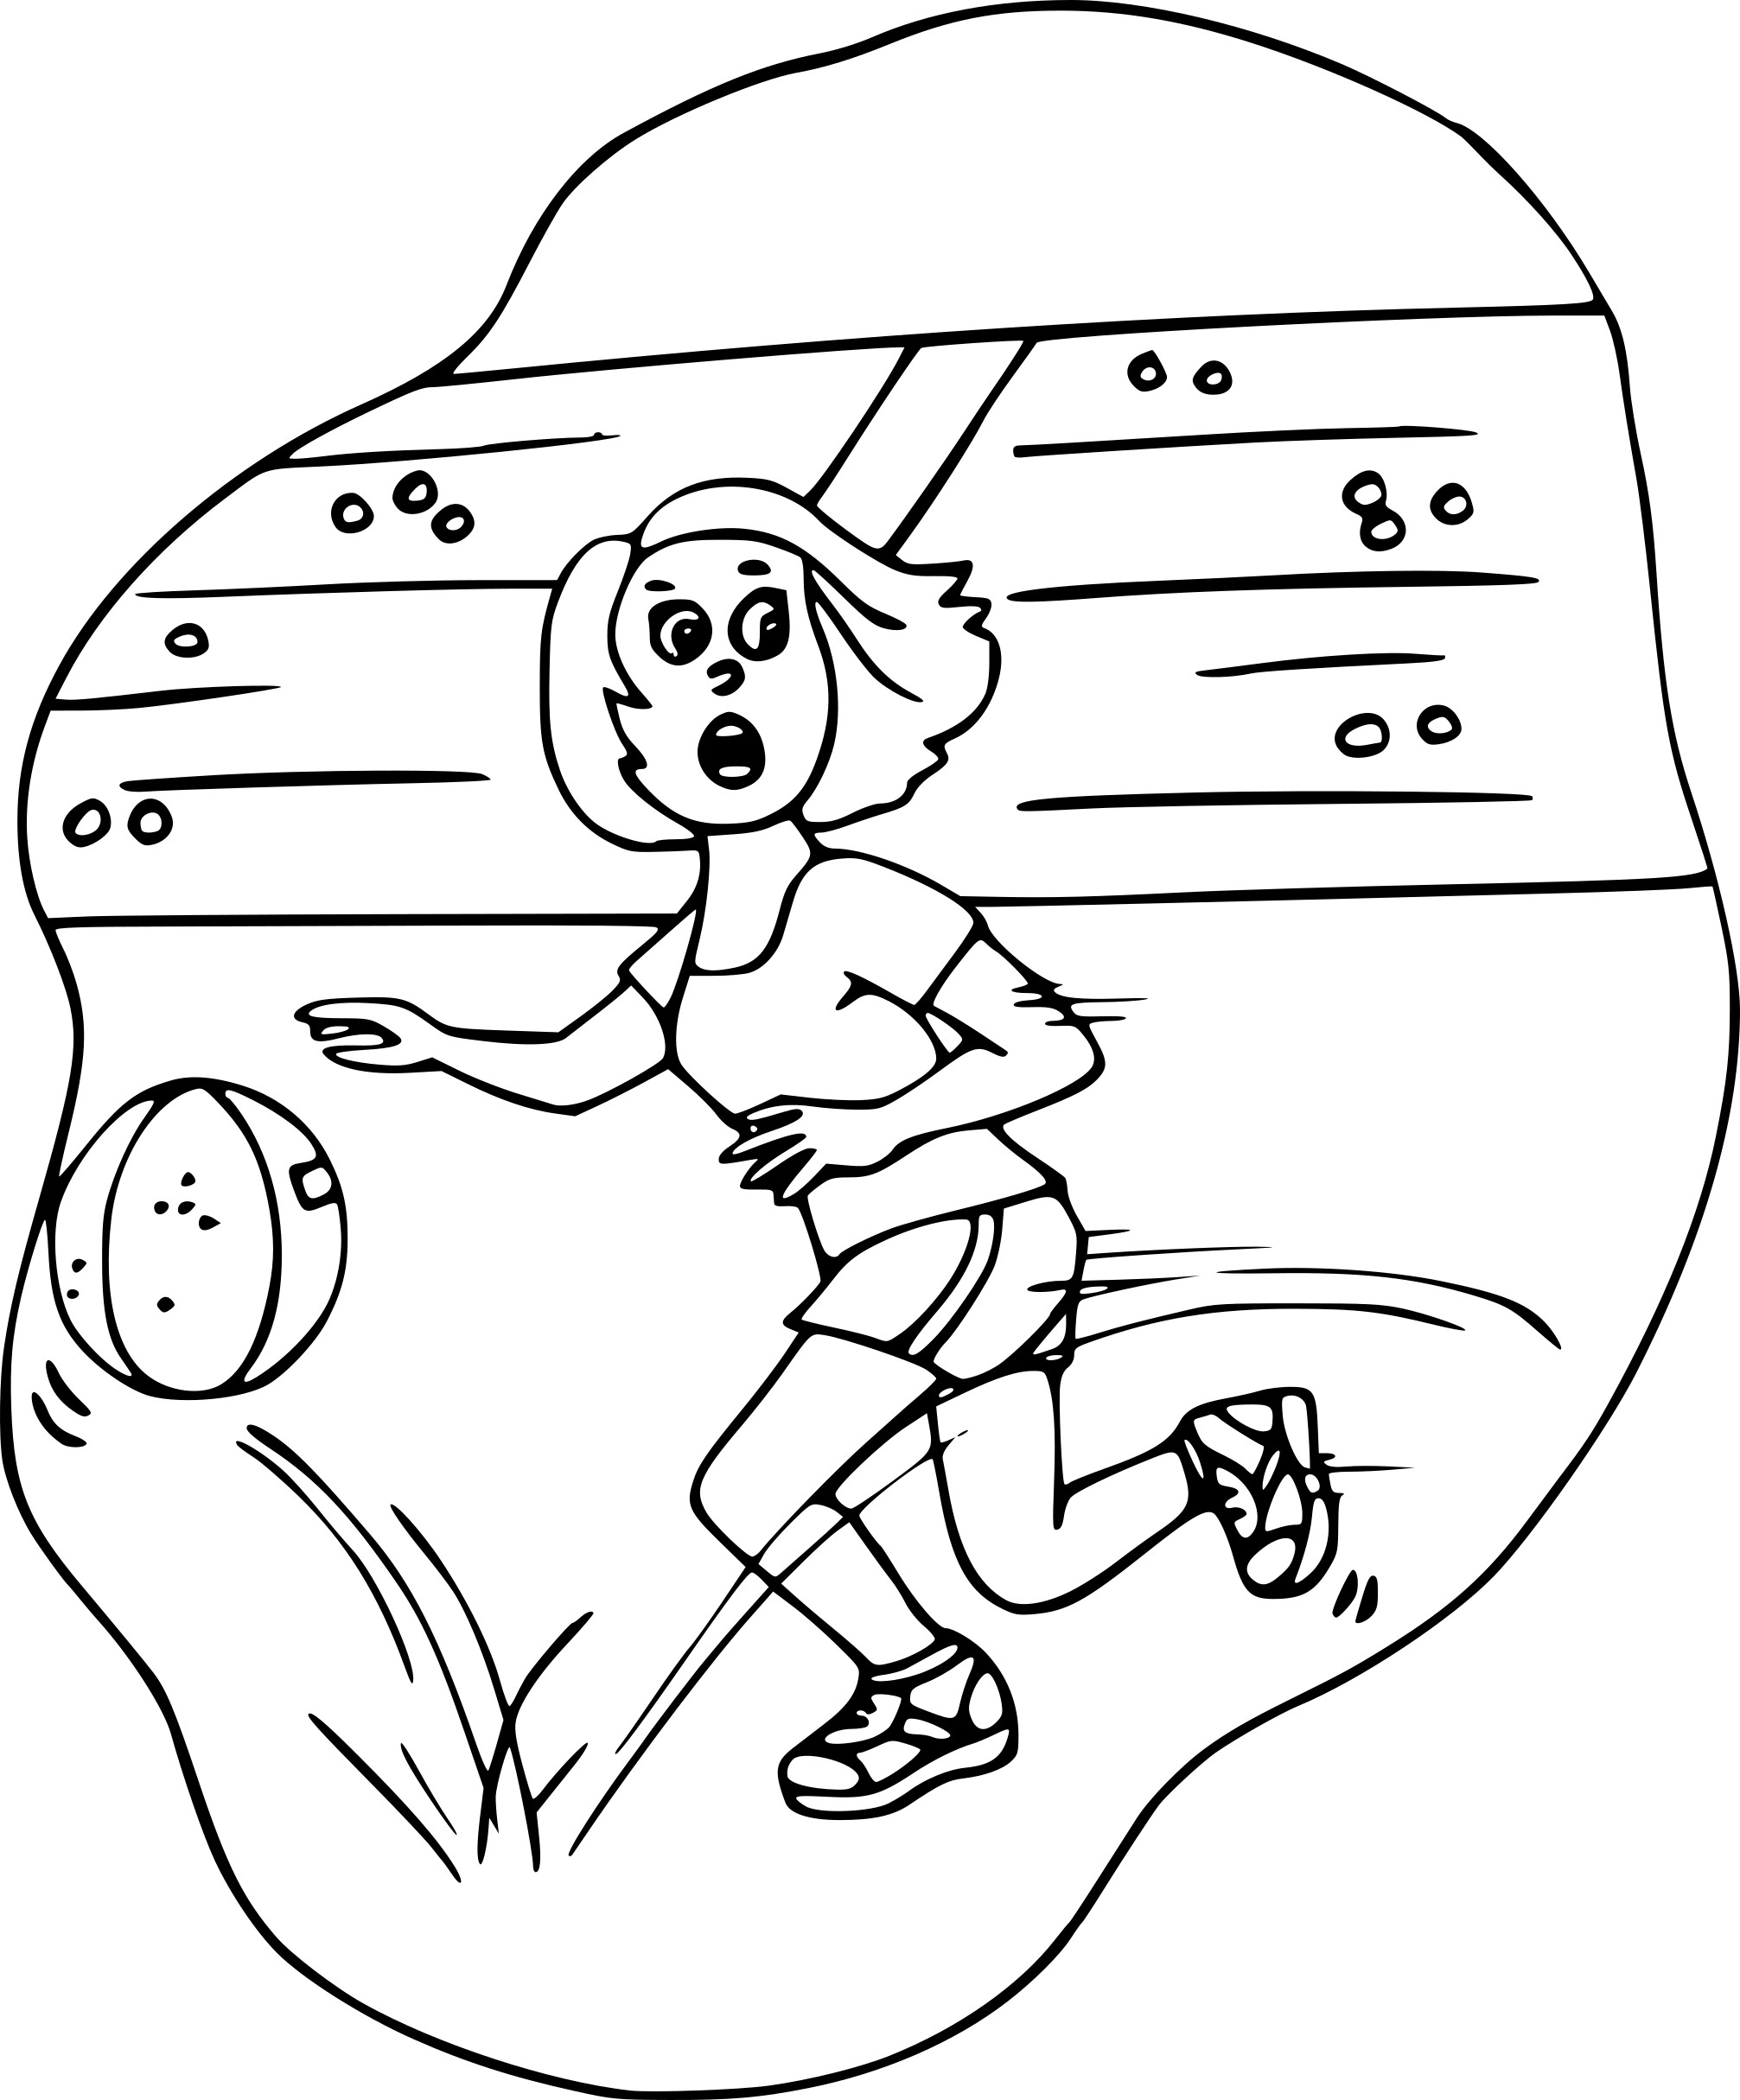 Coloriage Basket Fille.Coloriage Basketball Fille A Imprimer Sur Coloriages Info